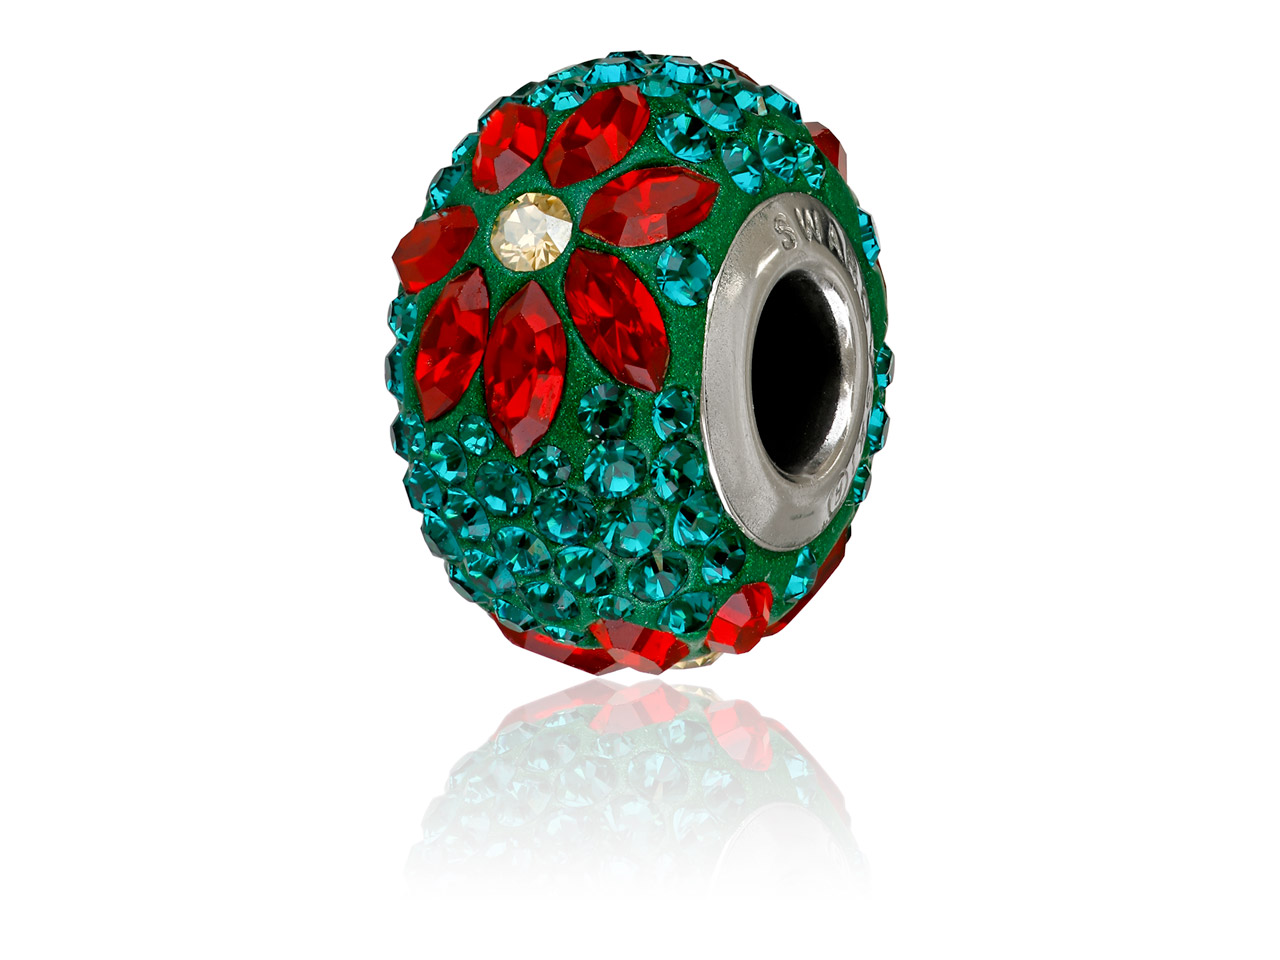 Swarovski Becharmed Pave Poinsettia Charm Bead, Emerald, 14mm, Limited  Edition